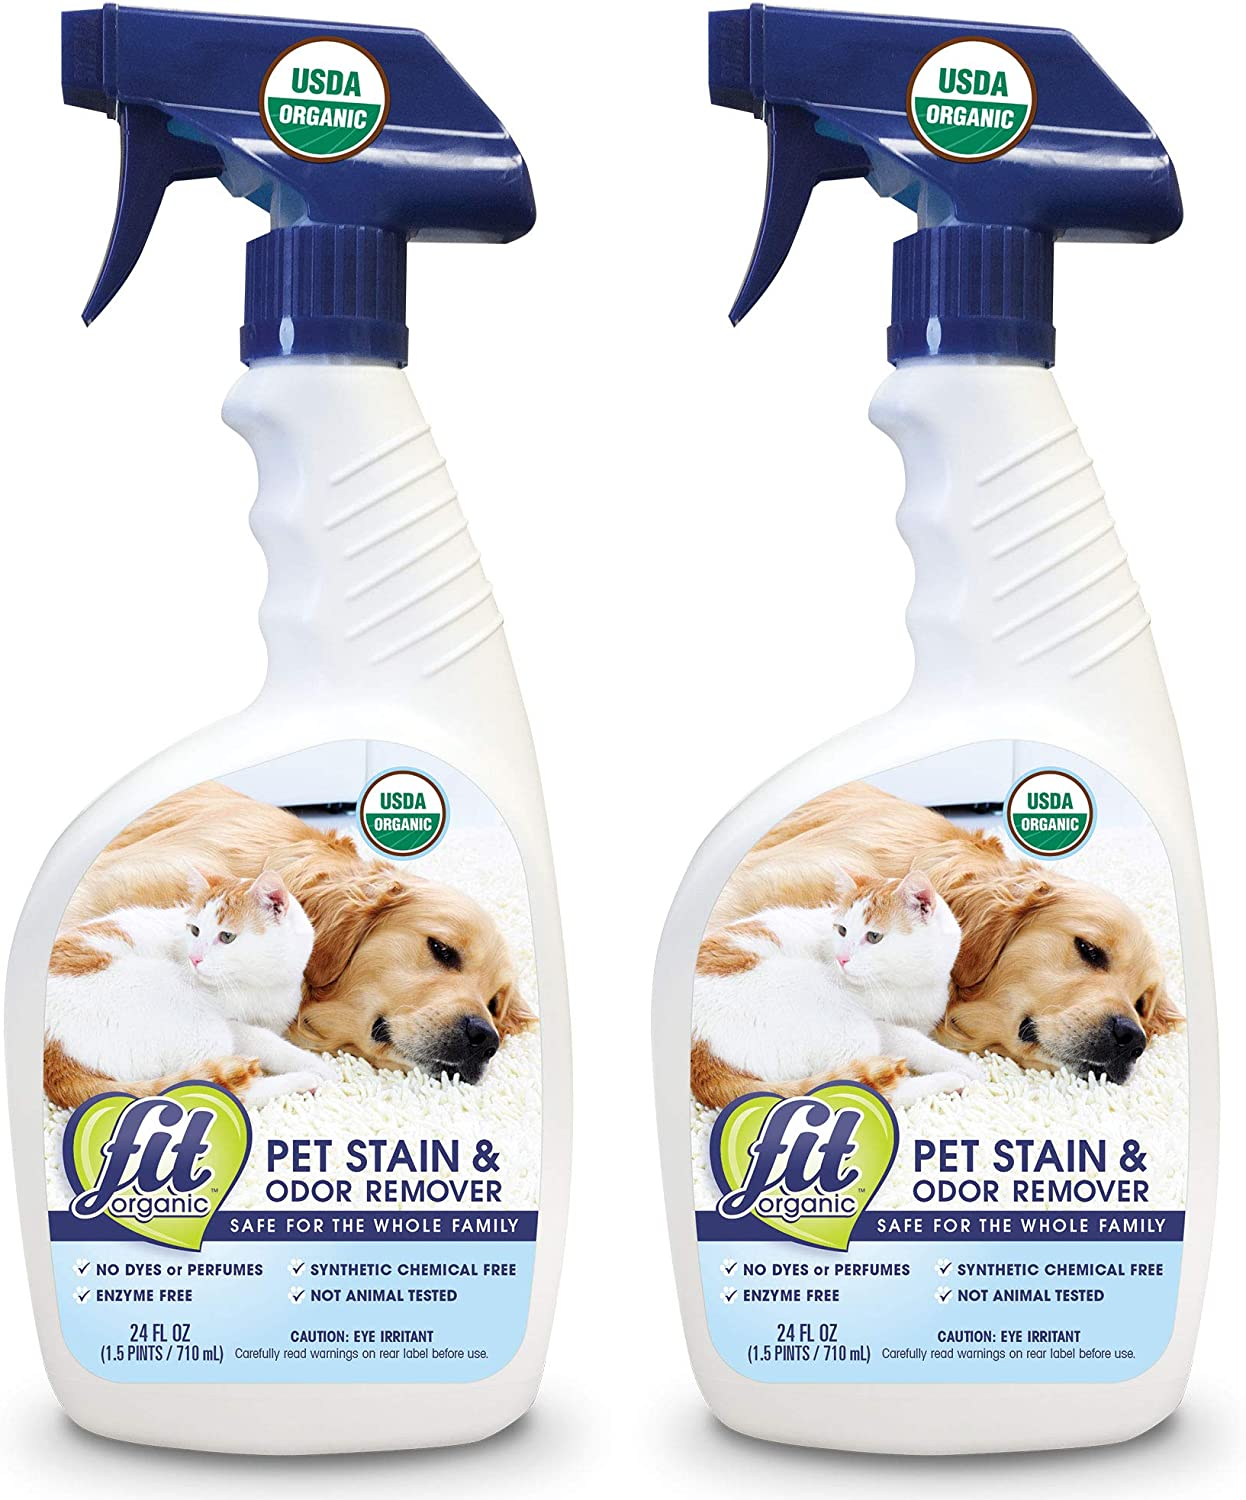 FIT Organic: All Natural Stain & Odor Eliminator, Pet Stain and Odor Remover, Spot Carpet Cleaner, Enzyme Free-24 oz